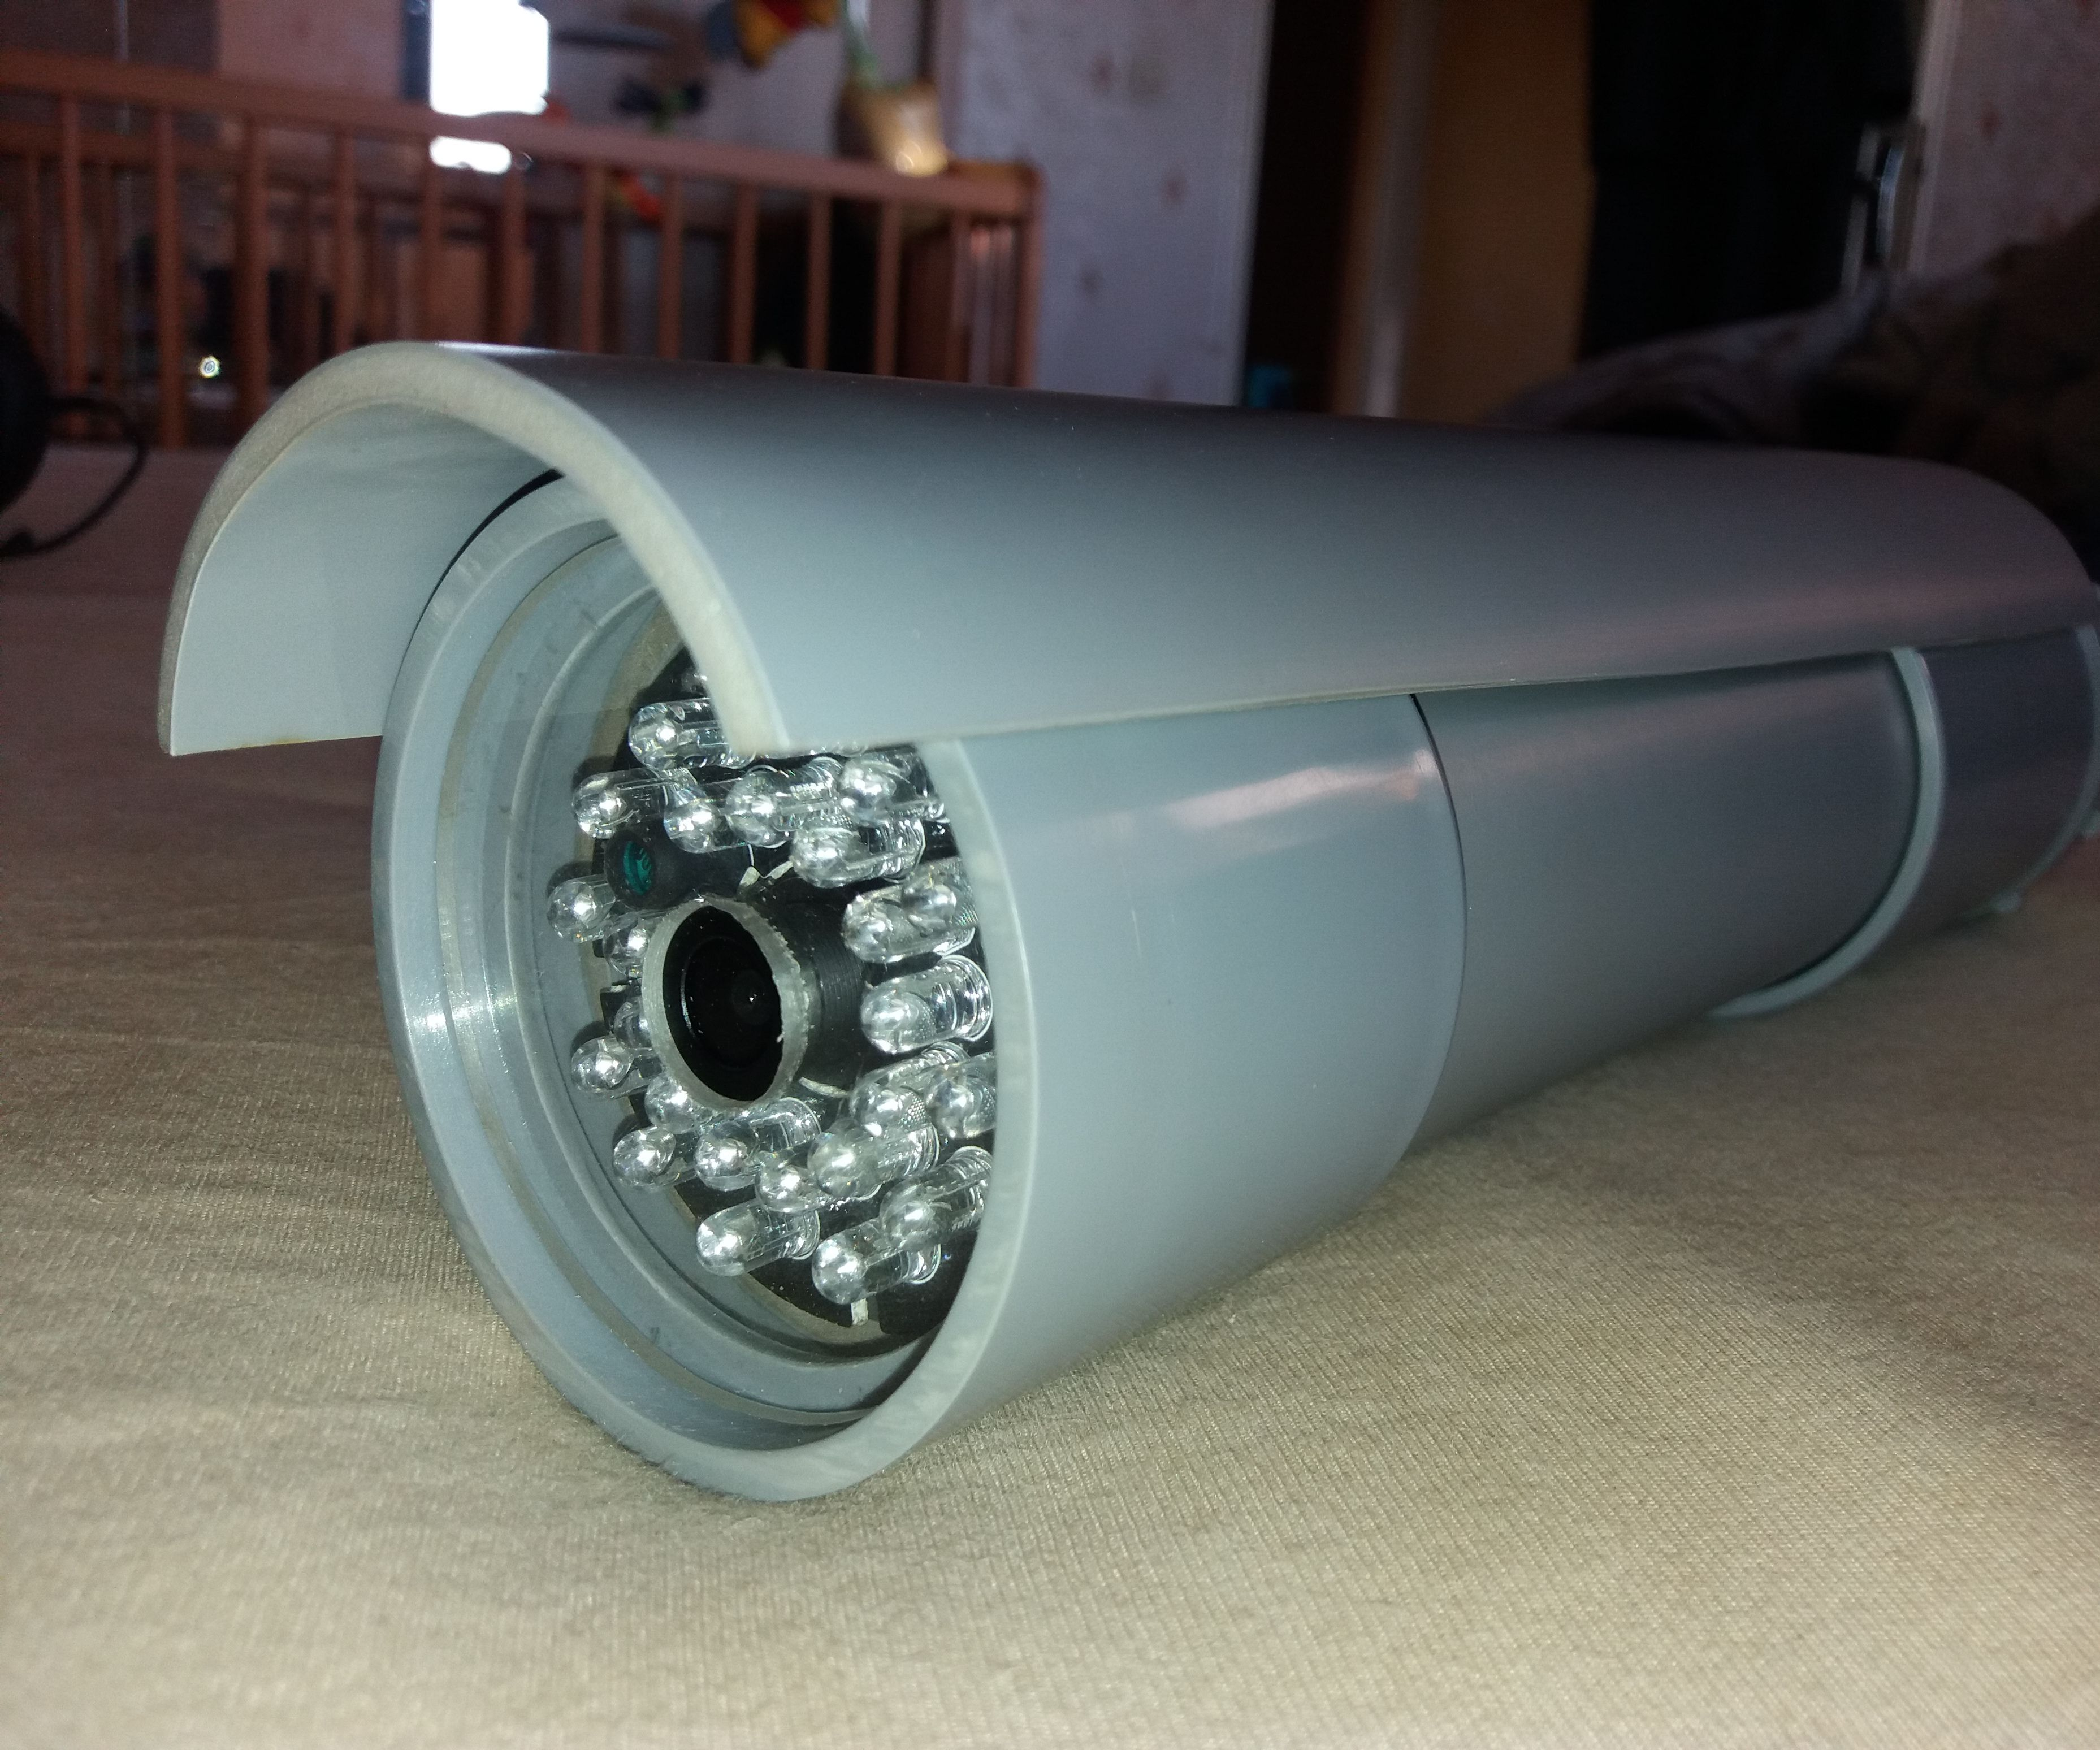 DIY Professional Open Source Night Vision Security Camera